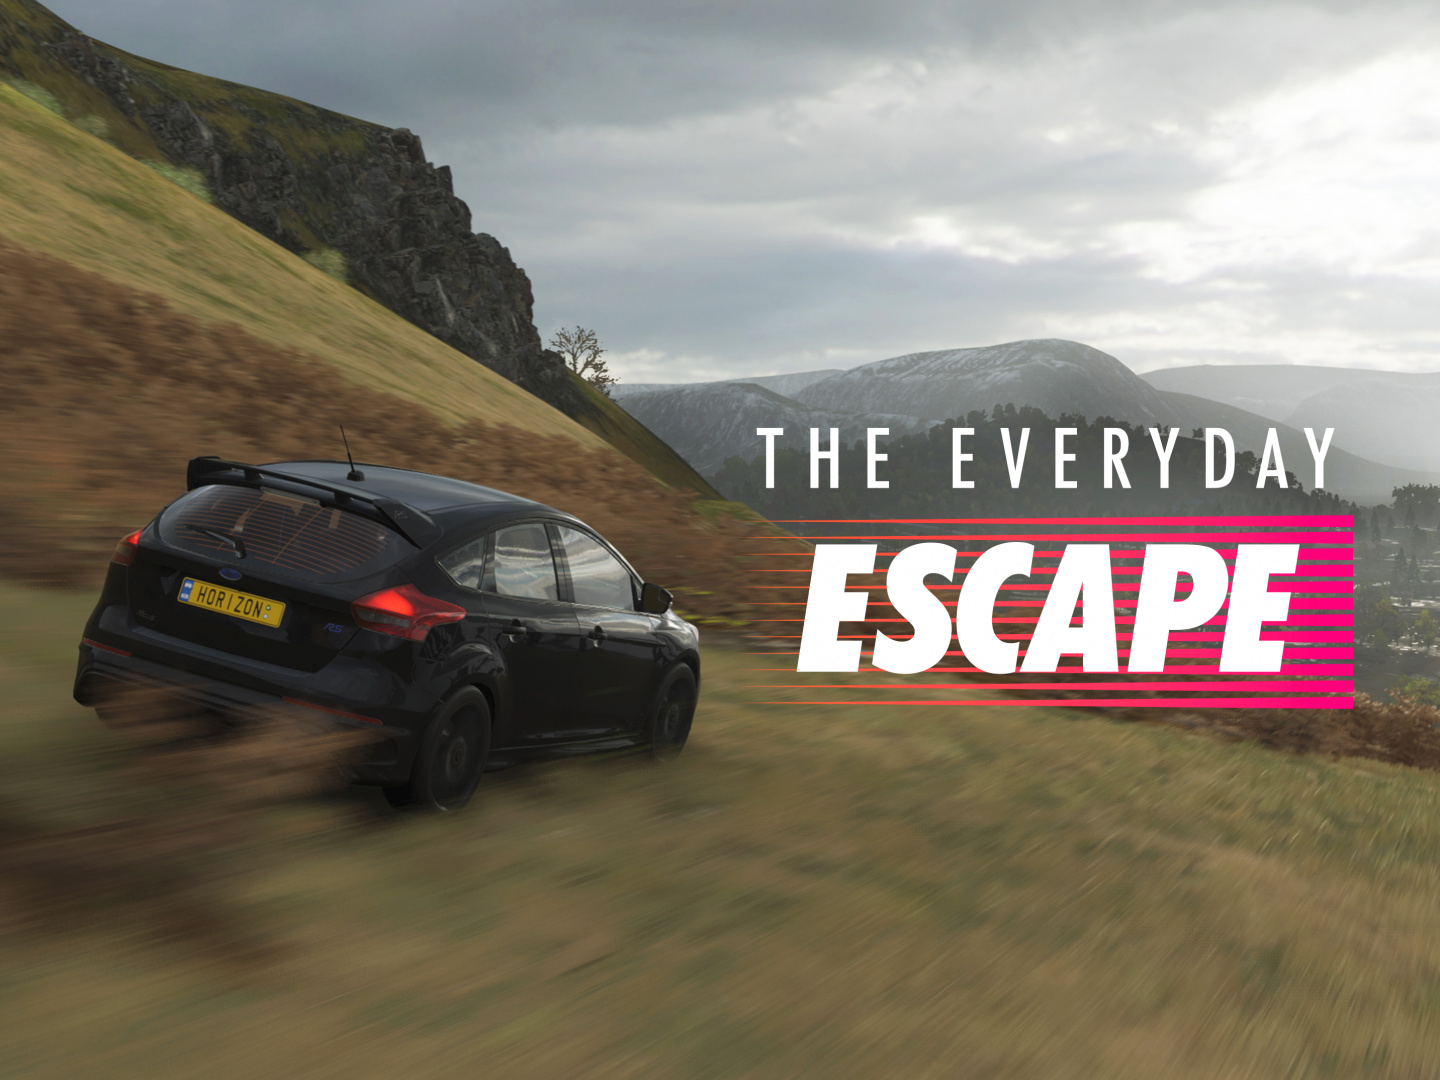 Everyday Escape Thumbnail